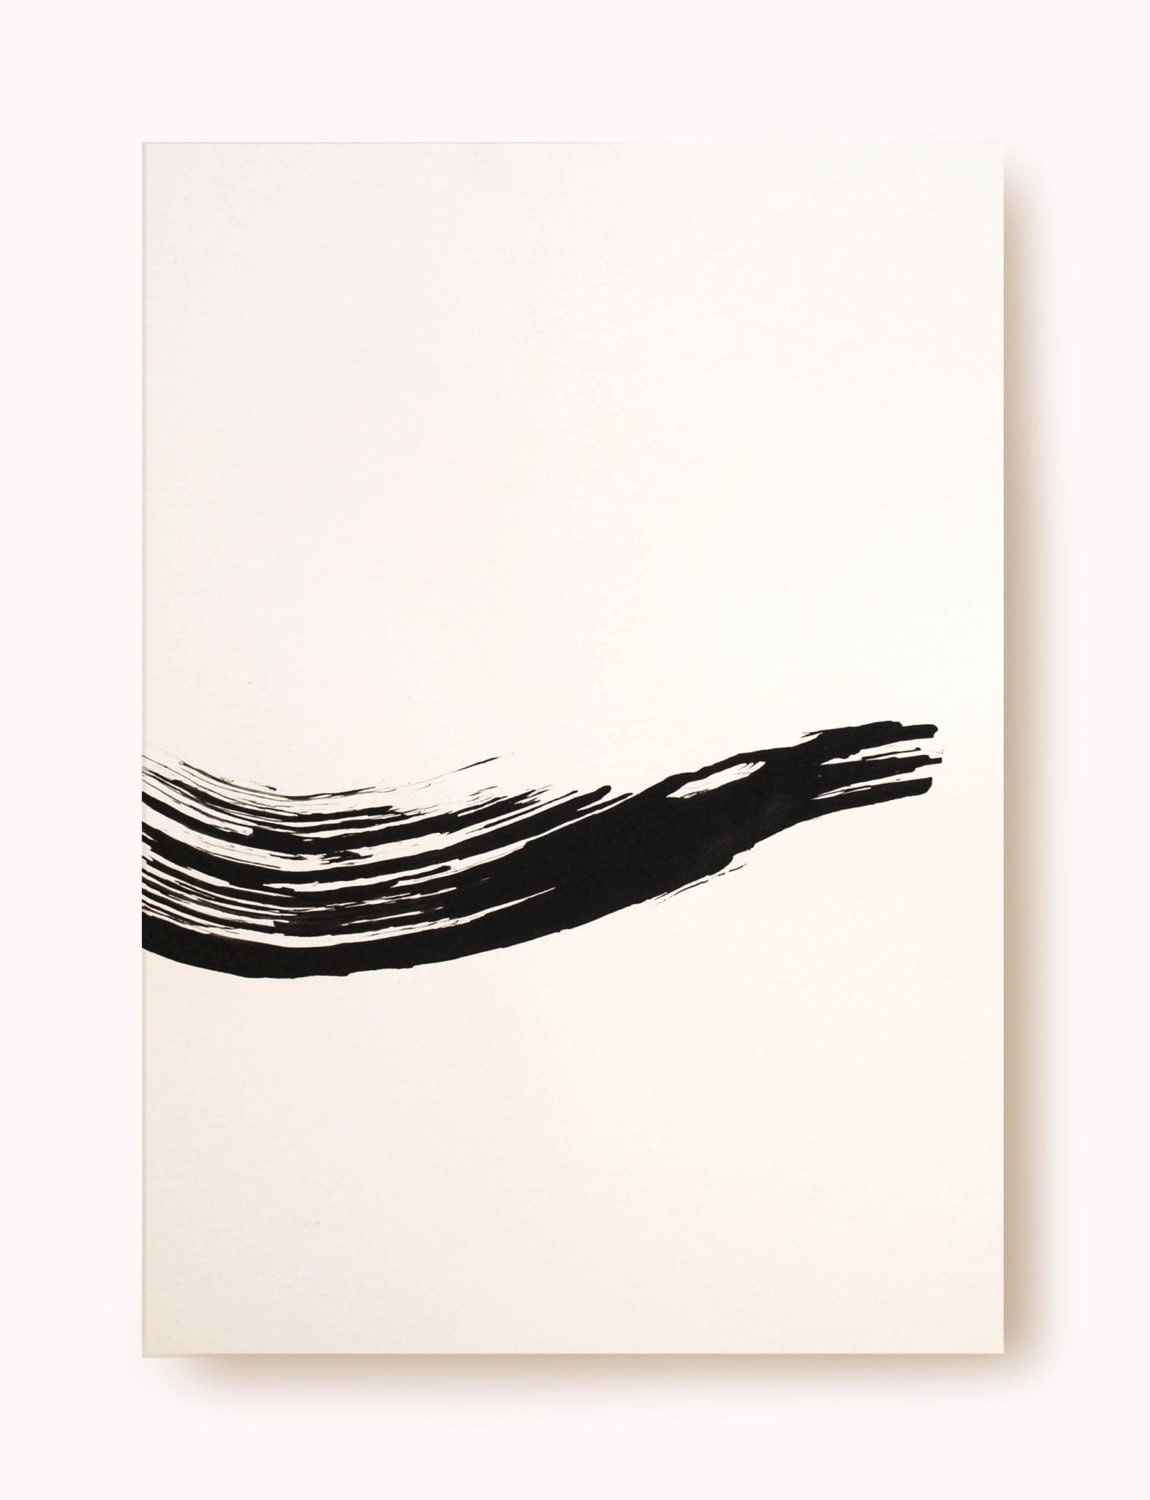 Original Fine Art Abstract Ink Drawing - Beauty way -  black  white  ink on acid free paper/ minimal drawing by Cristina Ripper - ComArt